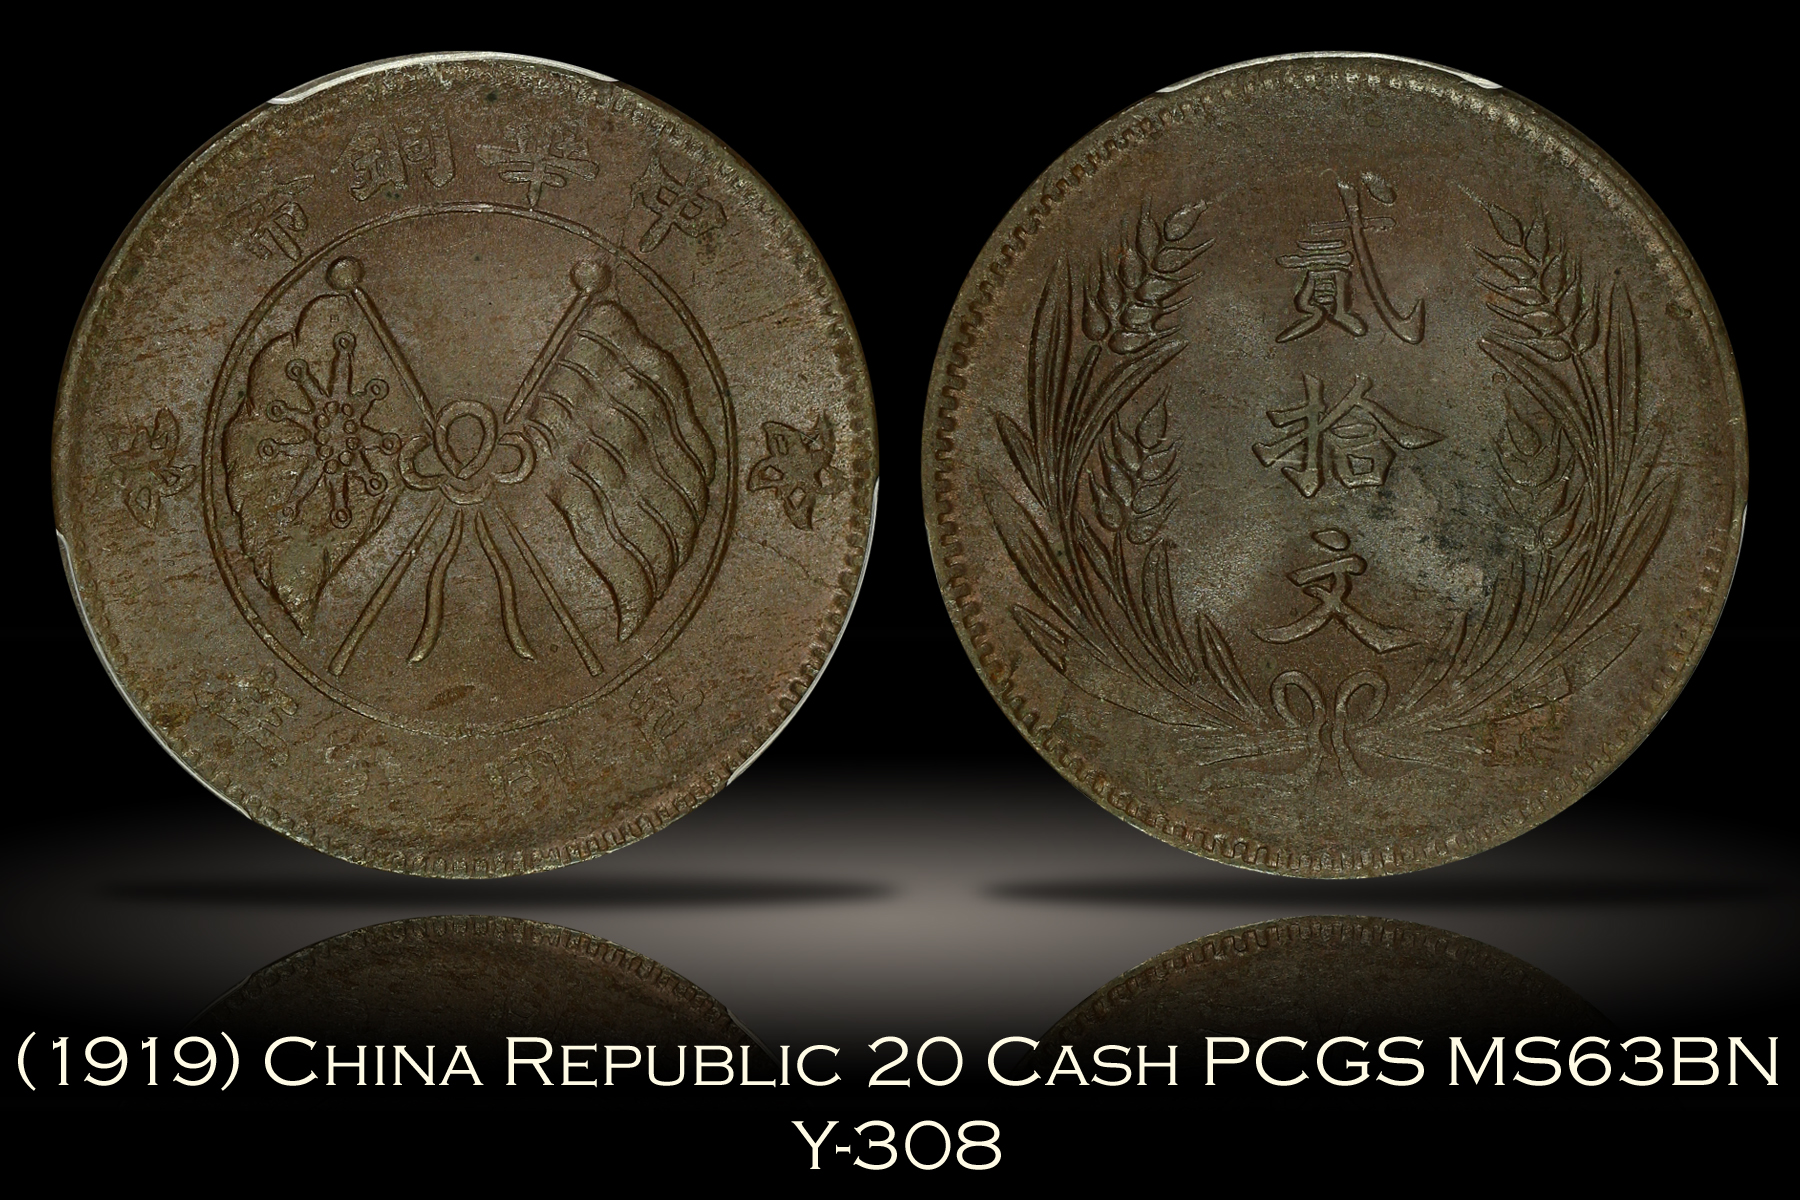 1919 China Republic 20 Cash Y-308 PCGS MS63BN